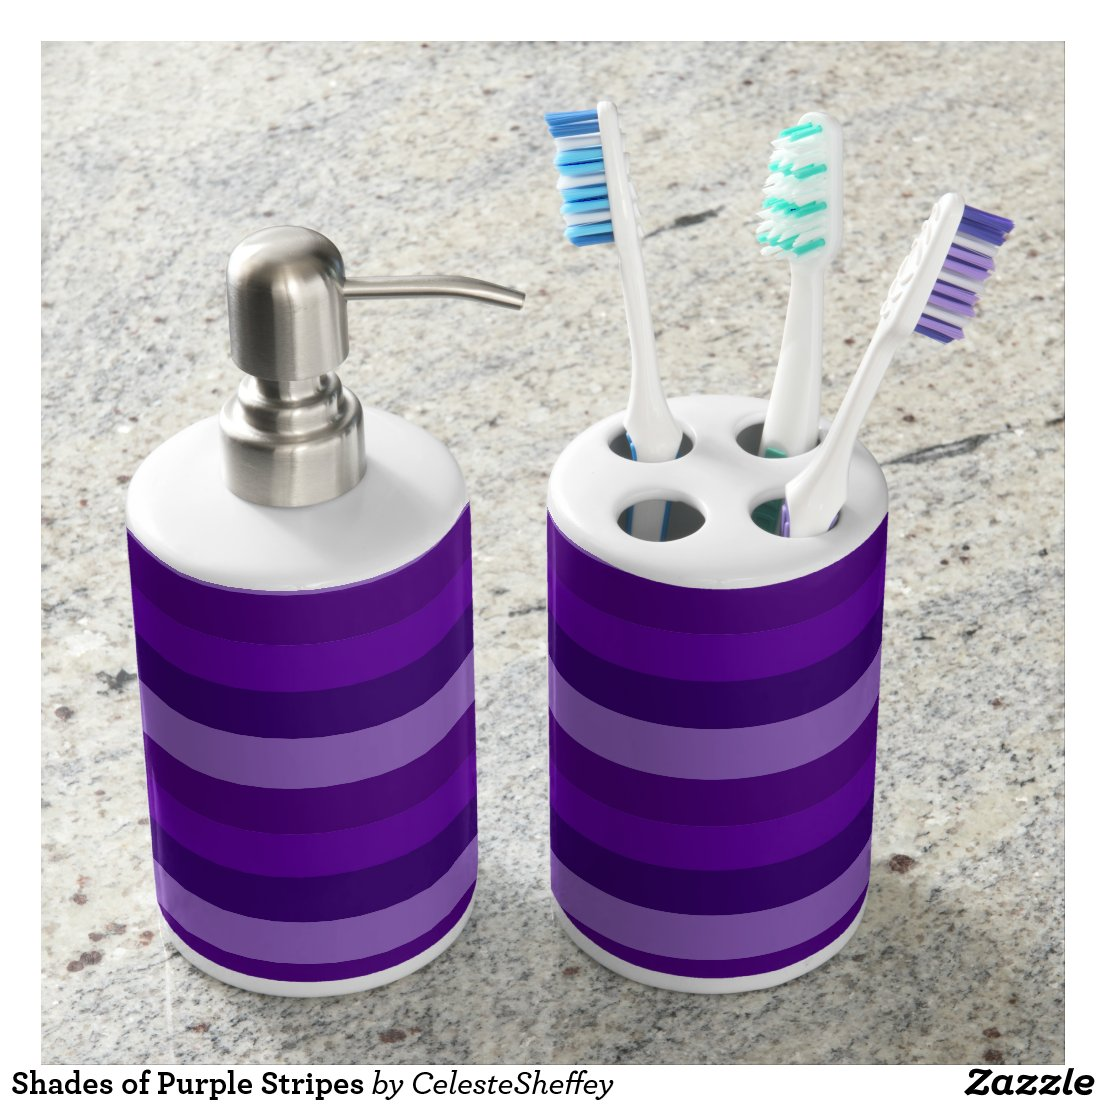 Shades of Purple Stripes Bathroom Set